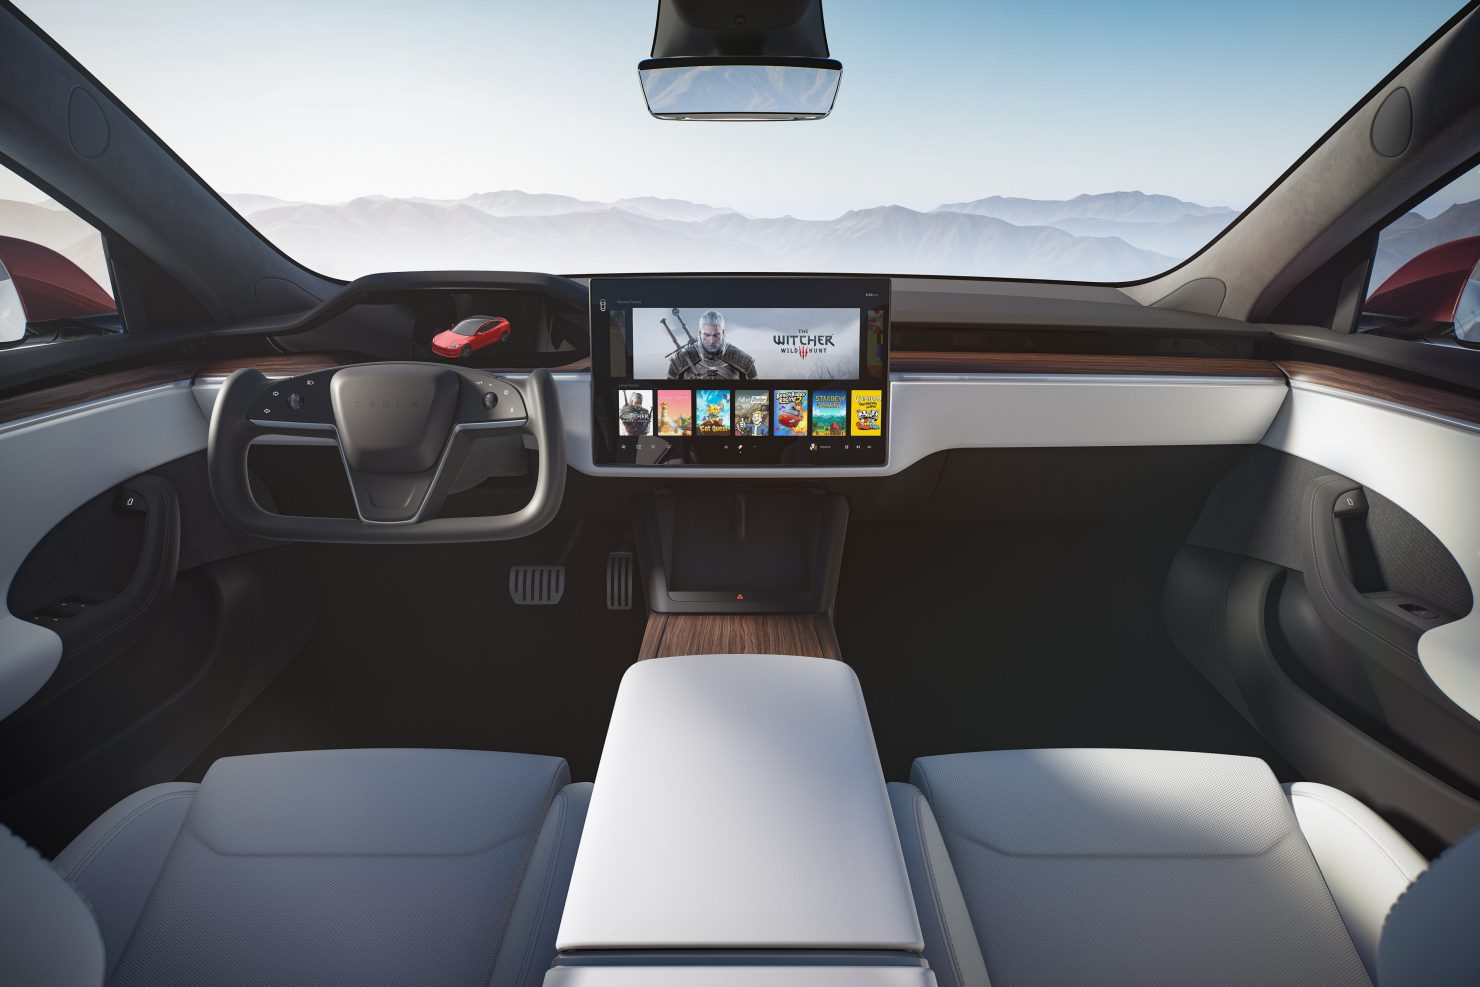 tesla-model-s-is-capable-of-playing-cyberpunk-2077-with-ps5-level-performance-as-demonstrated-by-elon-musk